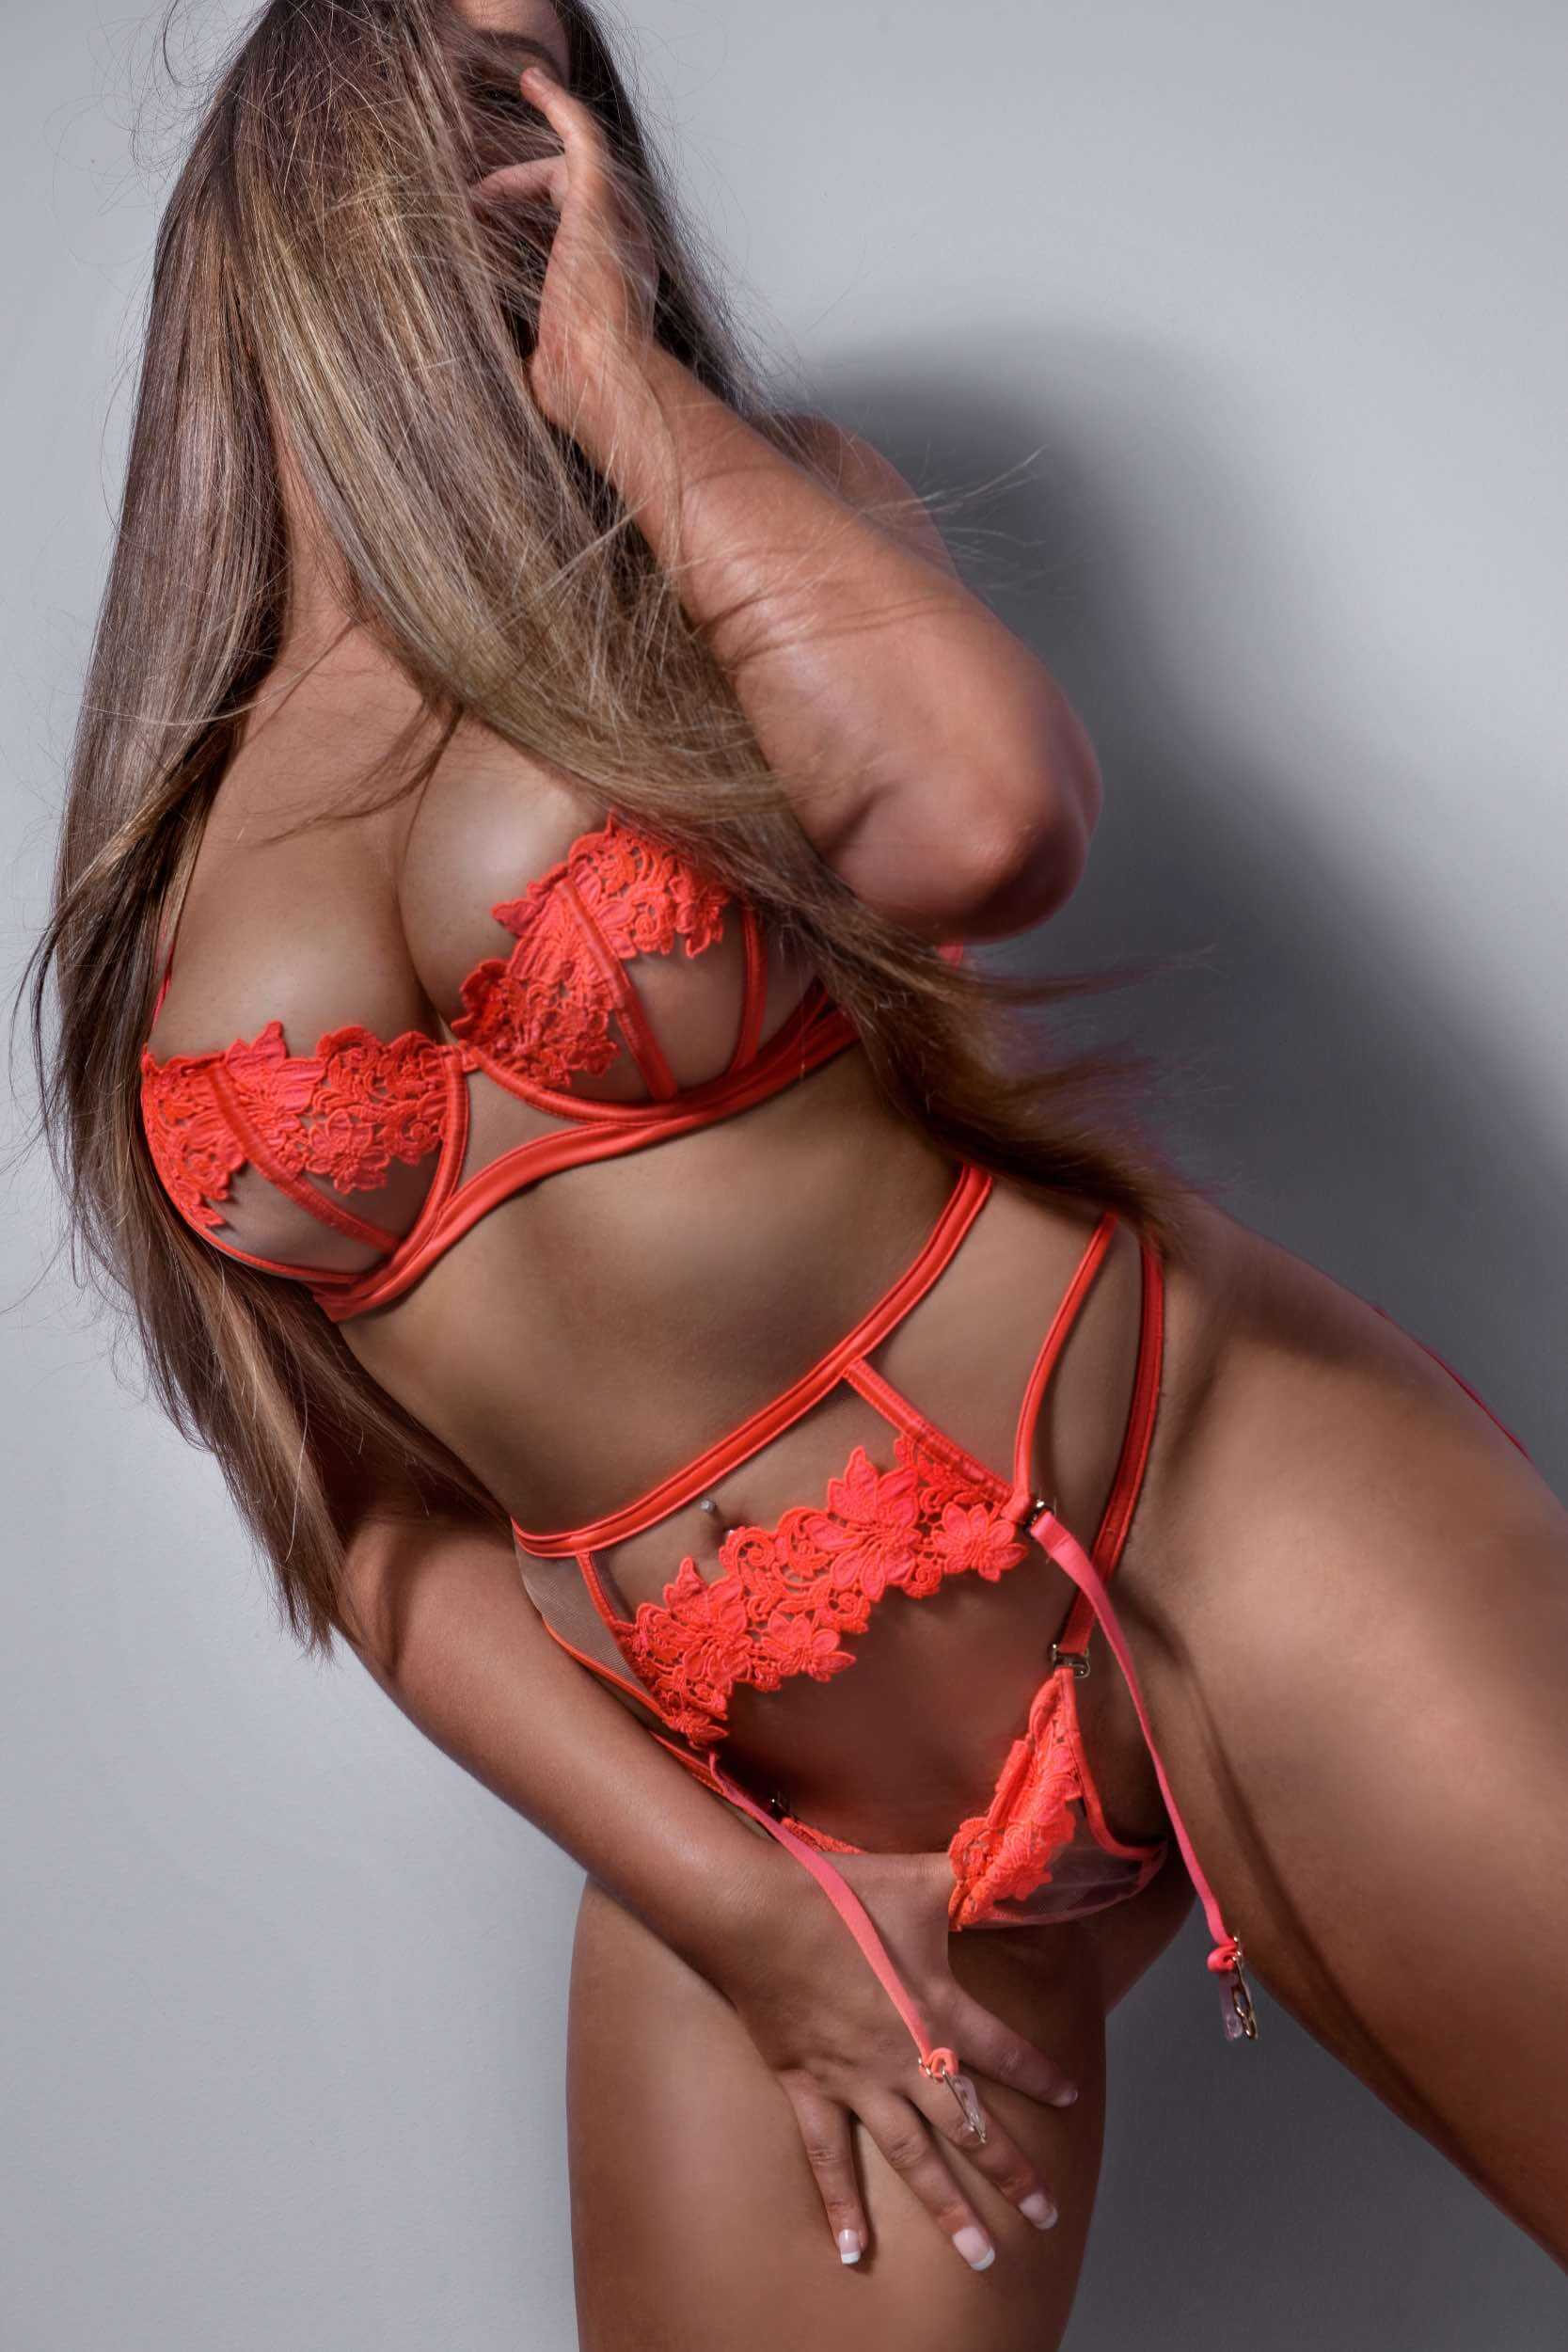 erotic massage Adelaide